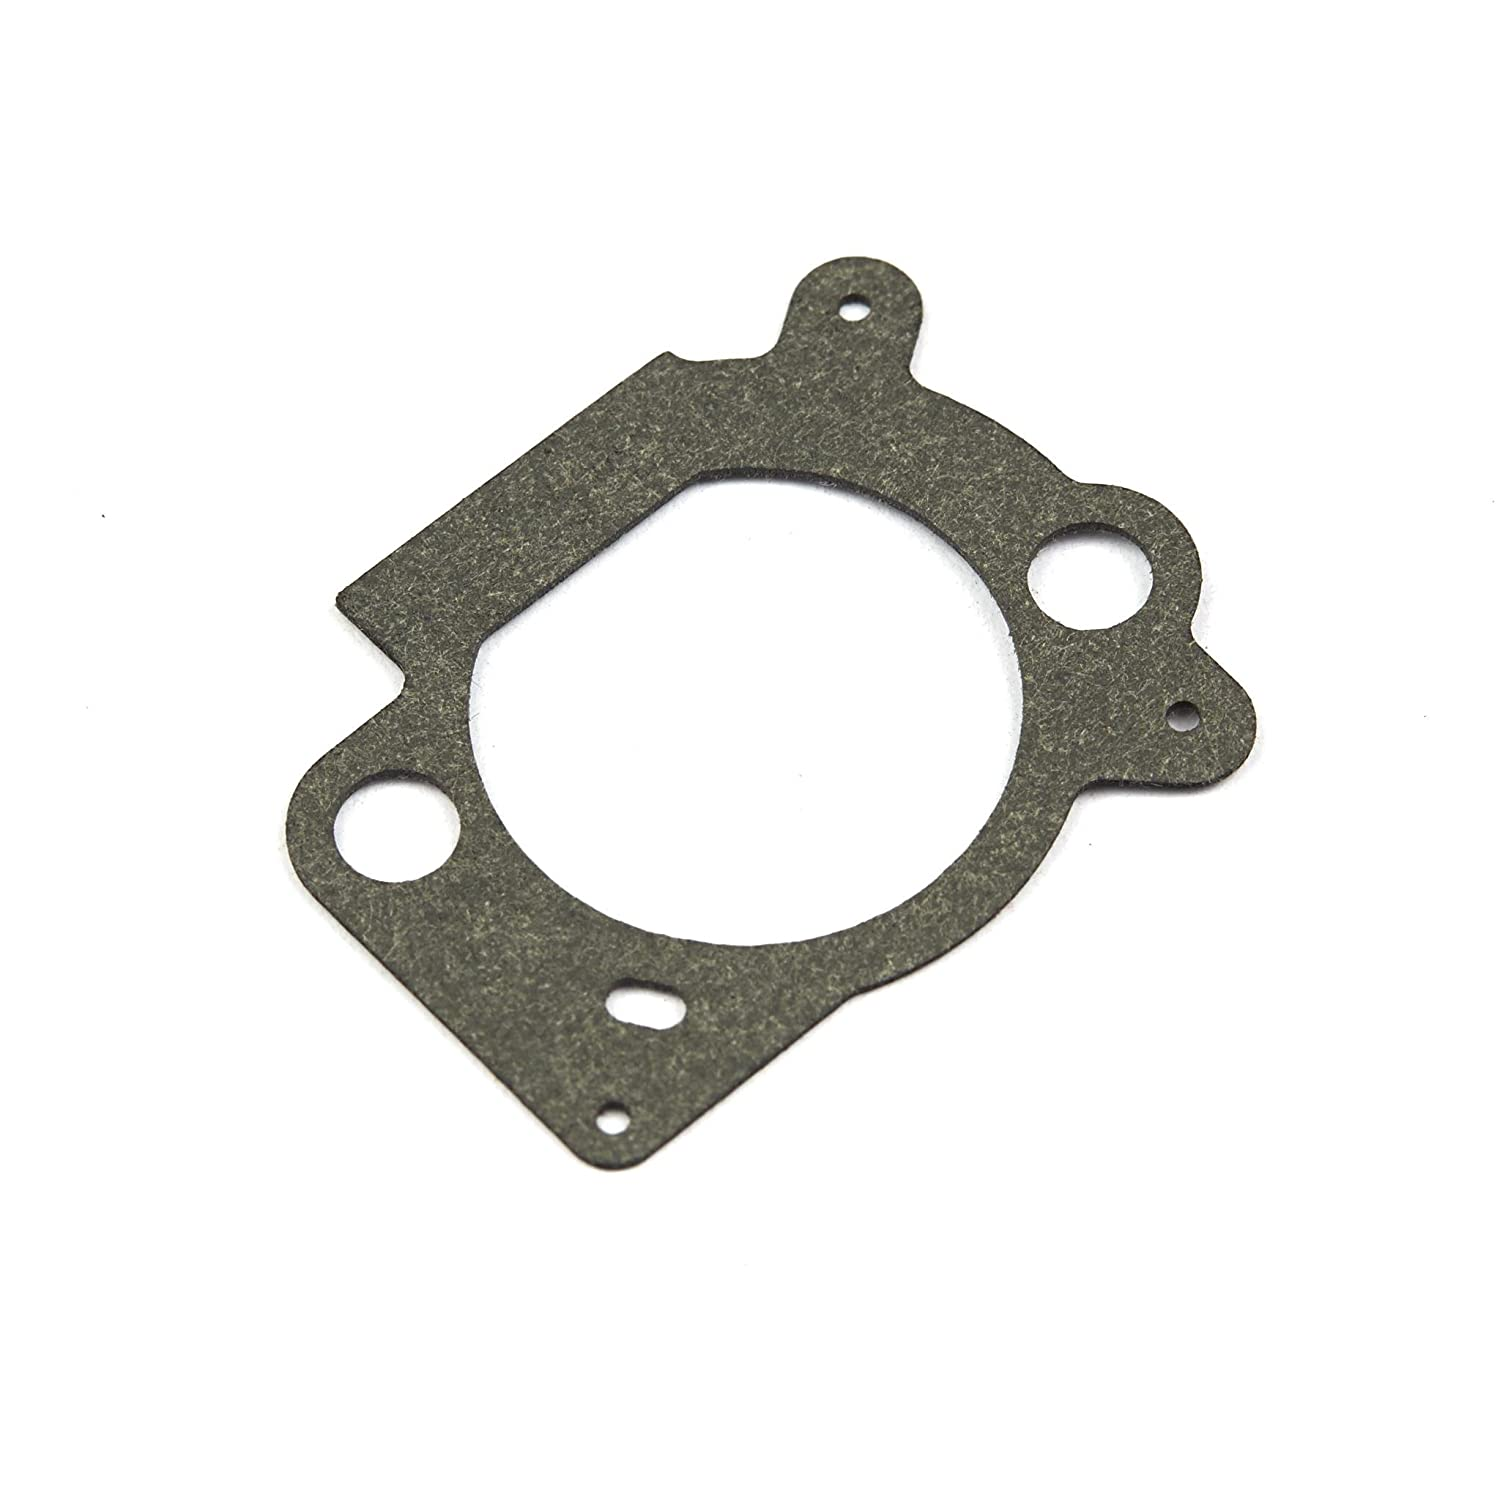 Briggs & Stratton 691894 Air Cleaner Gasket Replacement for Models 273364 & 691894